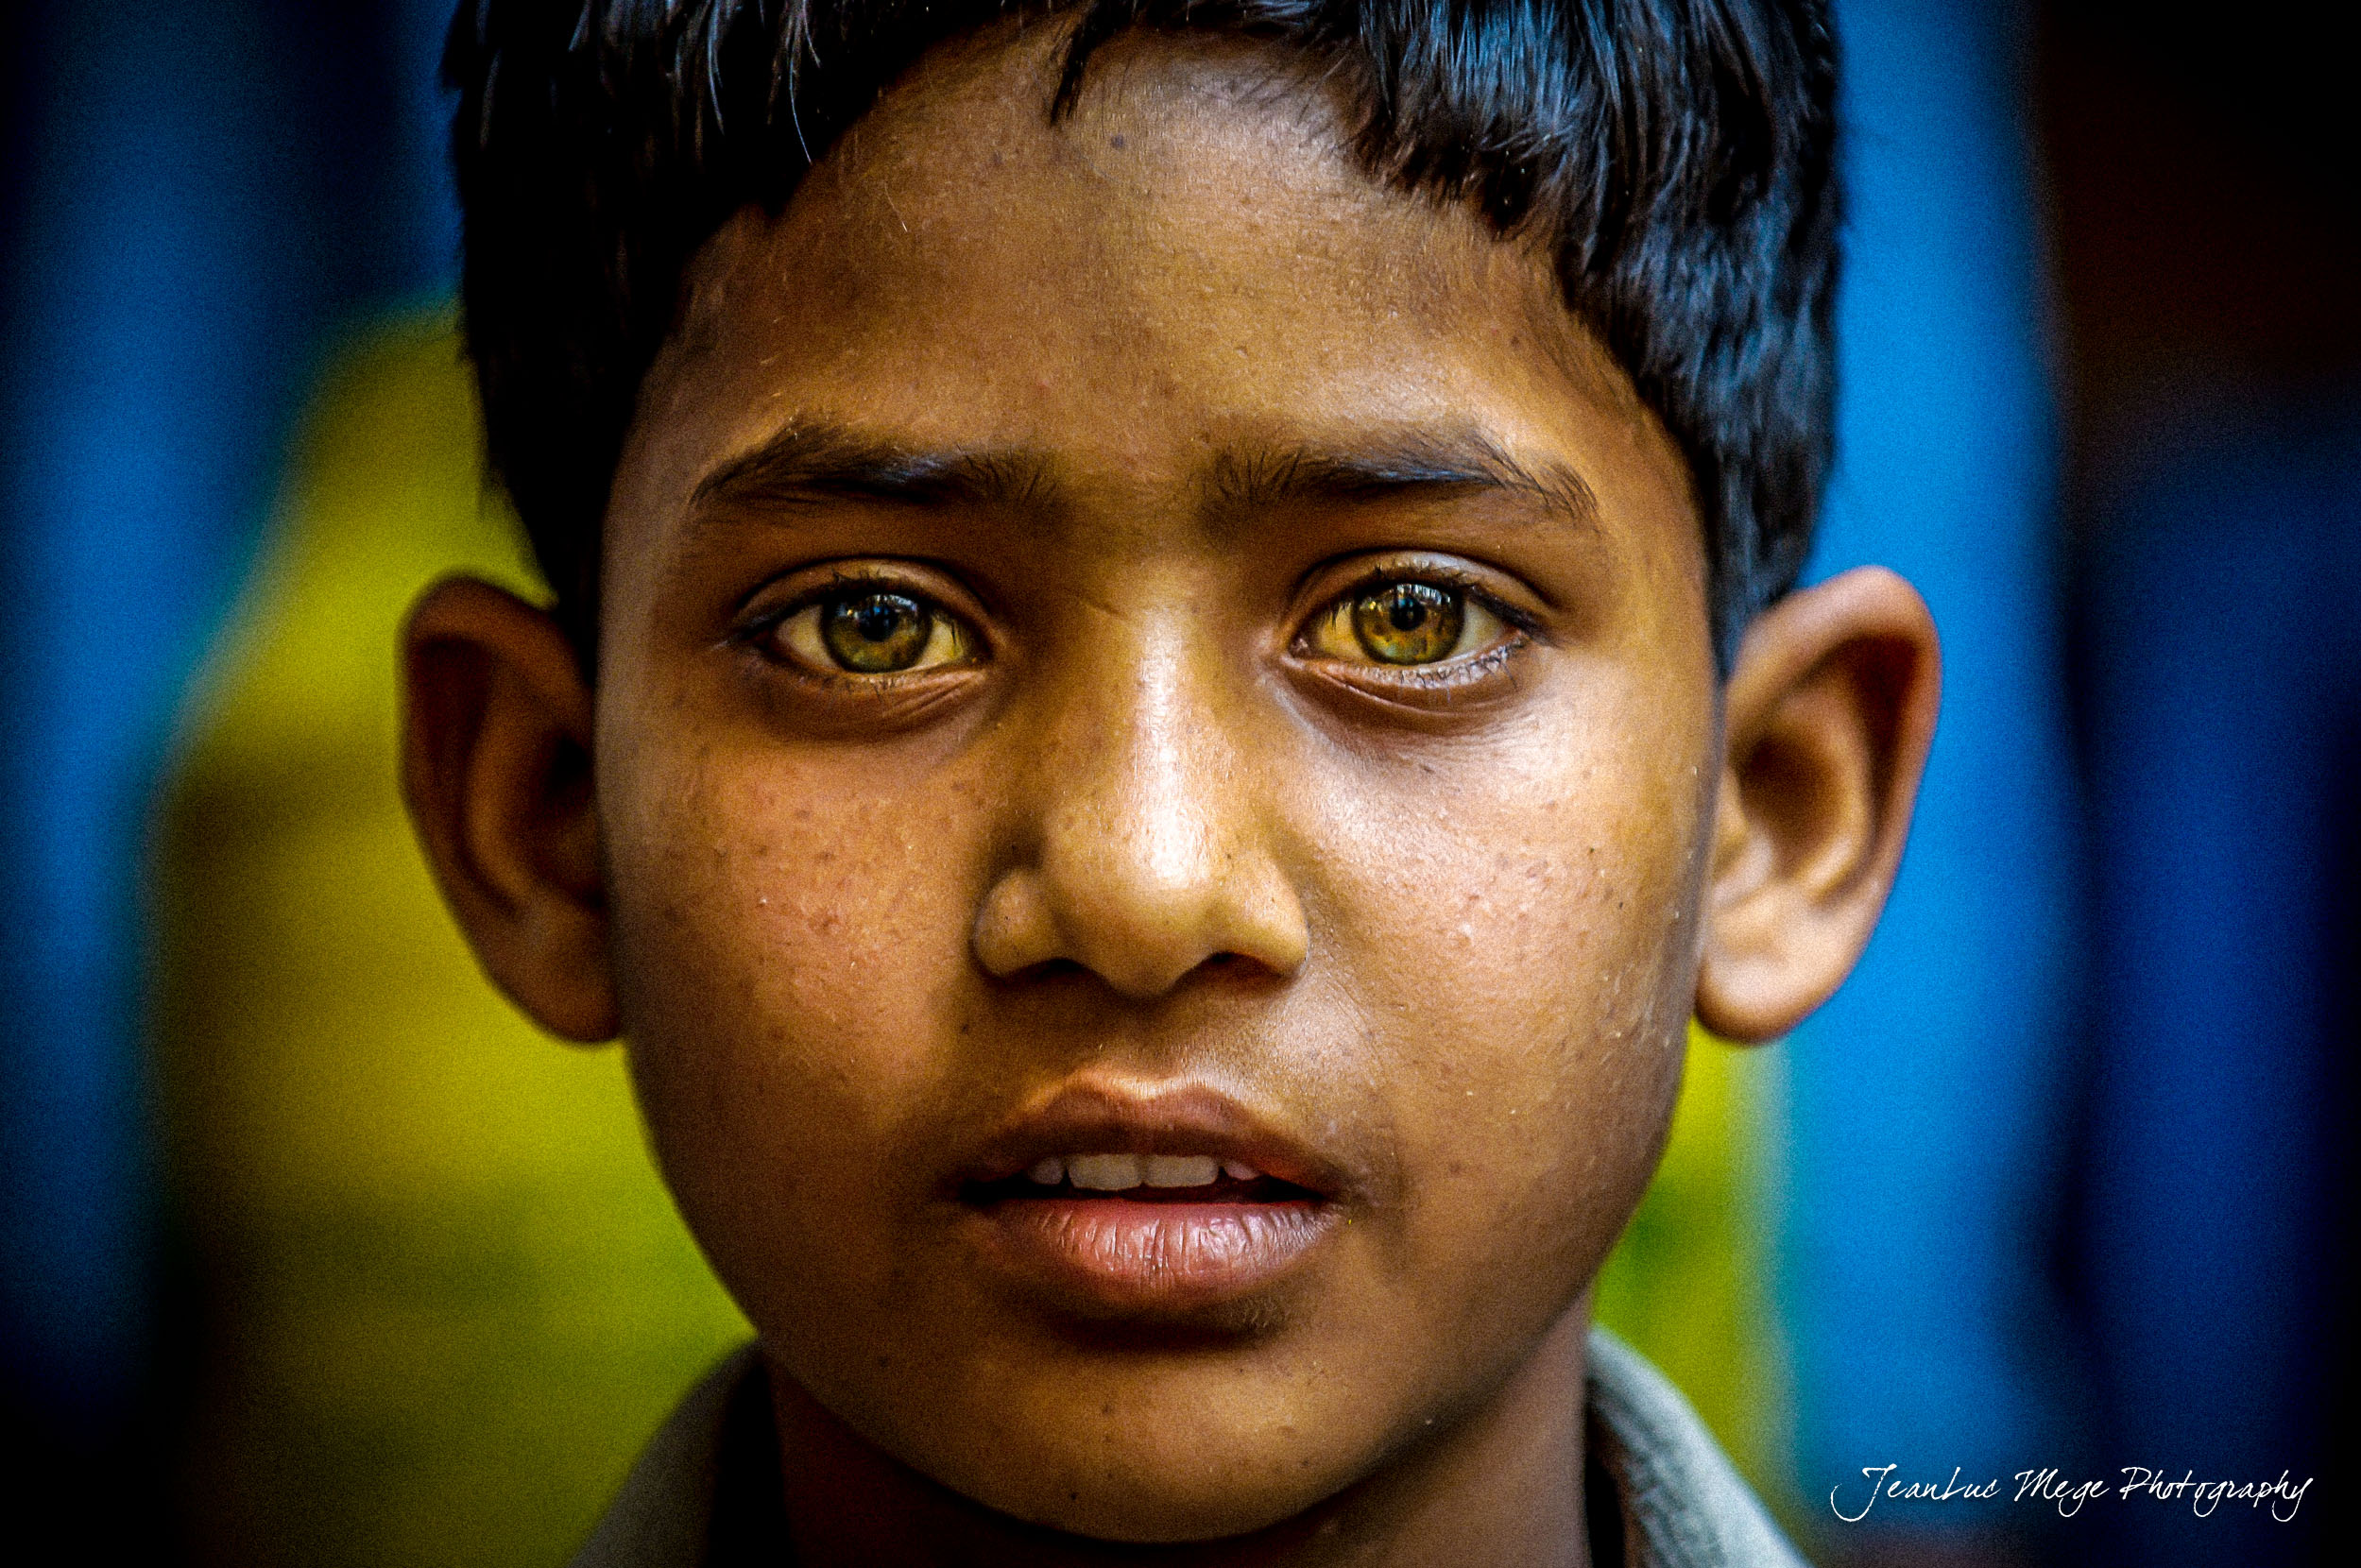 Streets of India J4-5 ©jeanlucmege-6688.jpg